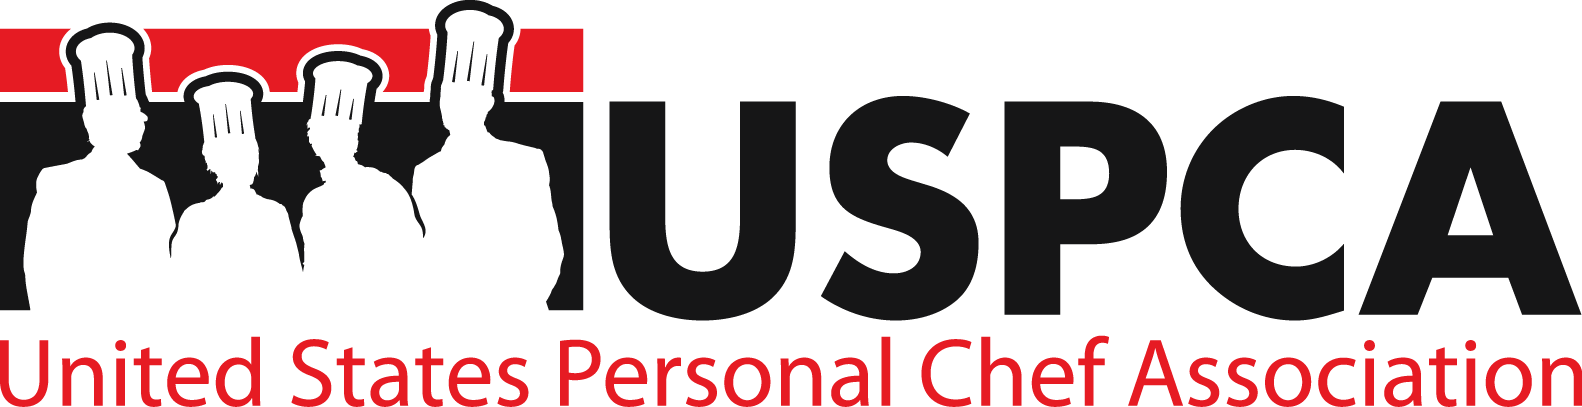 United States Personal Chef Association Logo